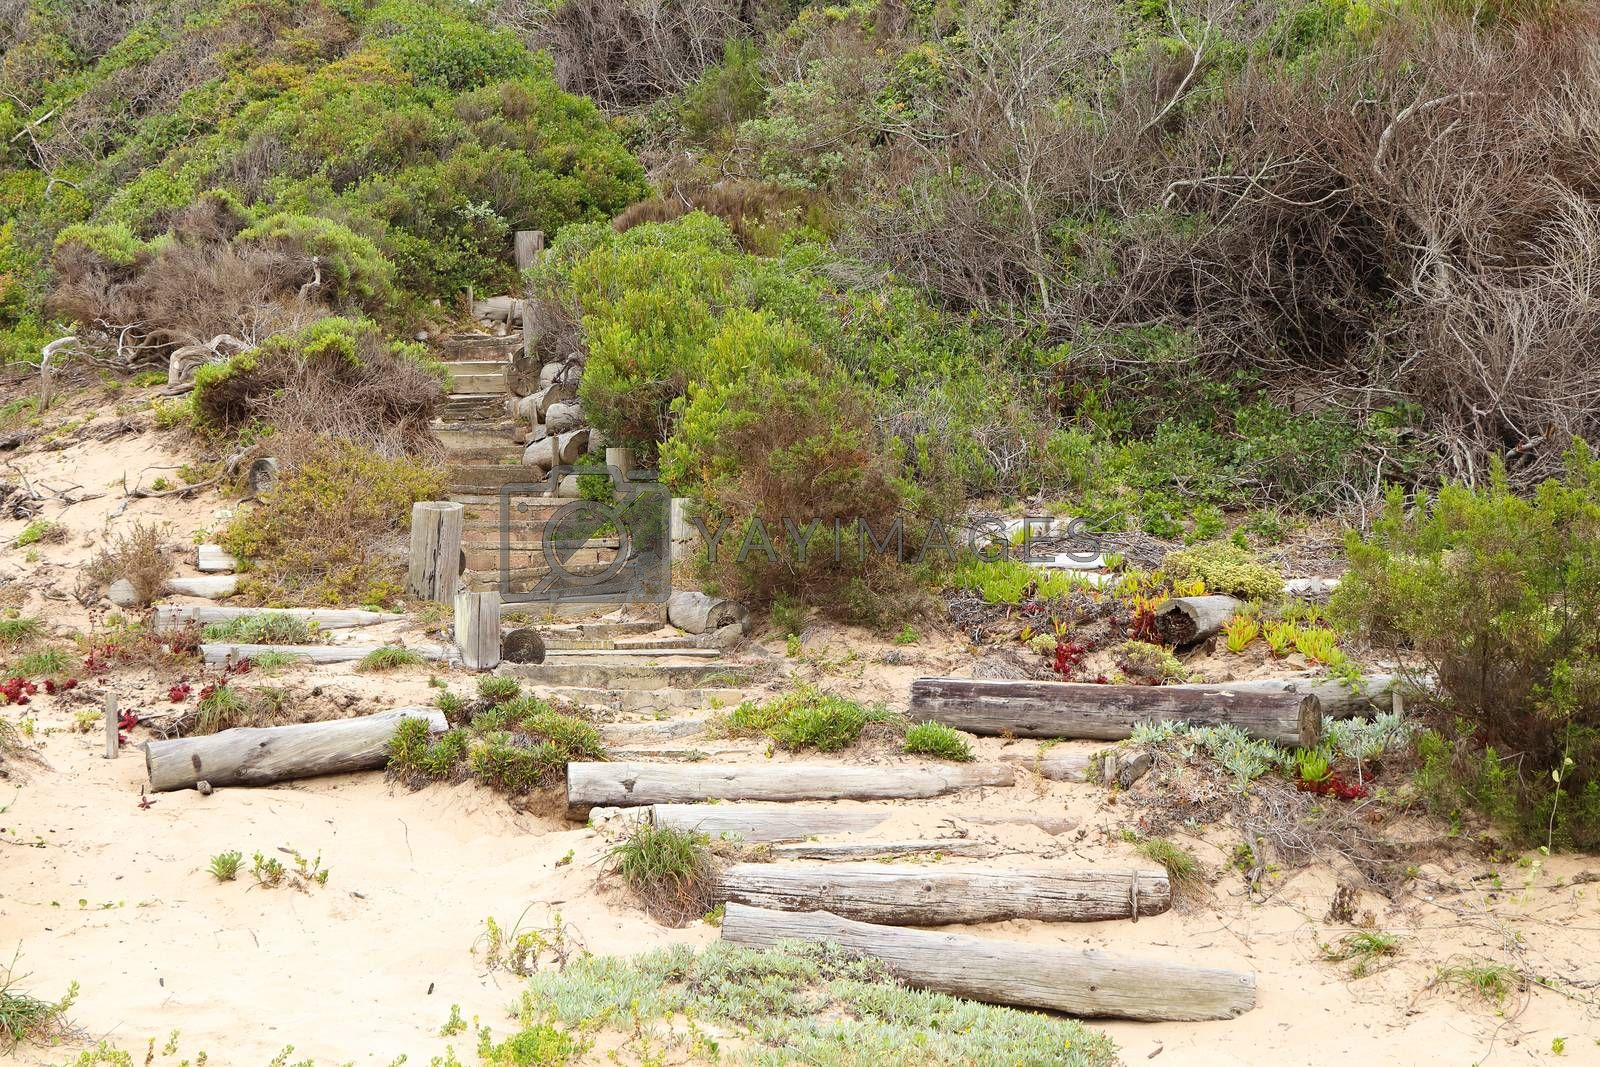 A coastal beach pathway staircase into the wilderness bushes, Plettenberg Bay, South Africa